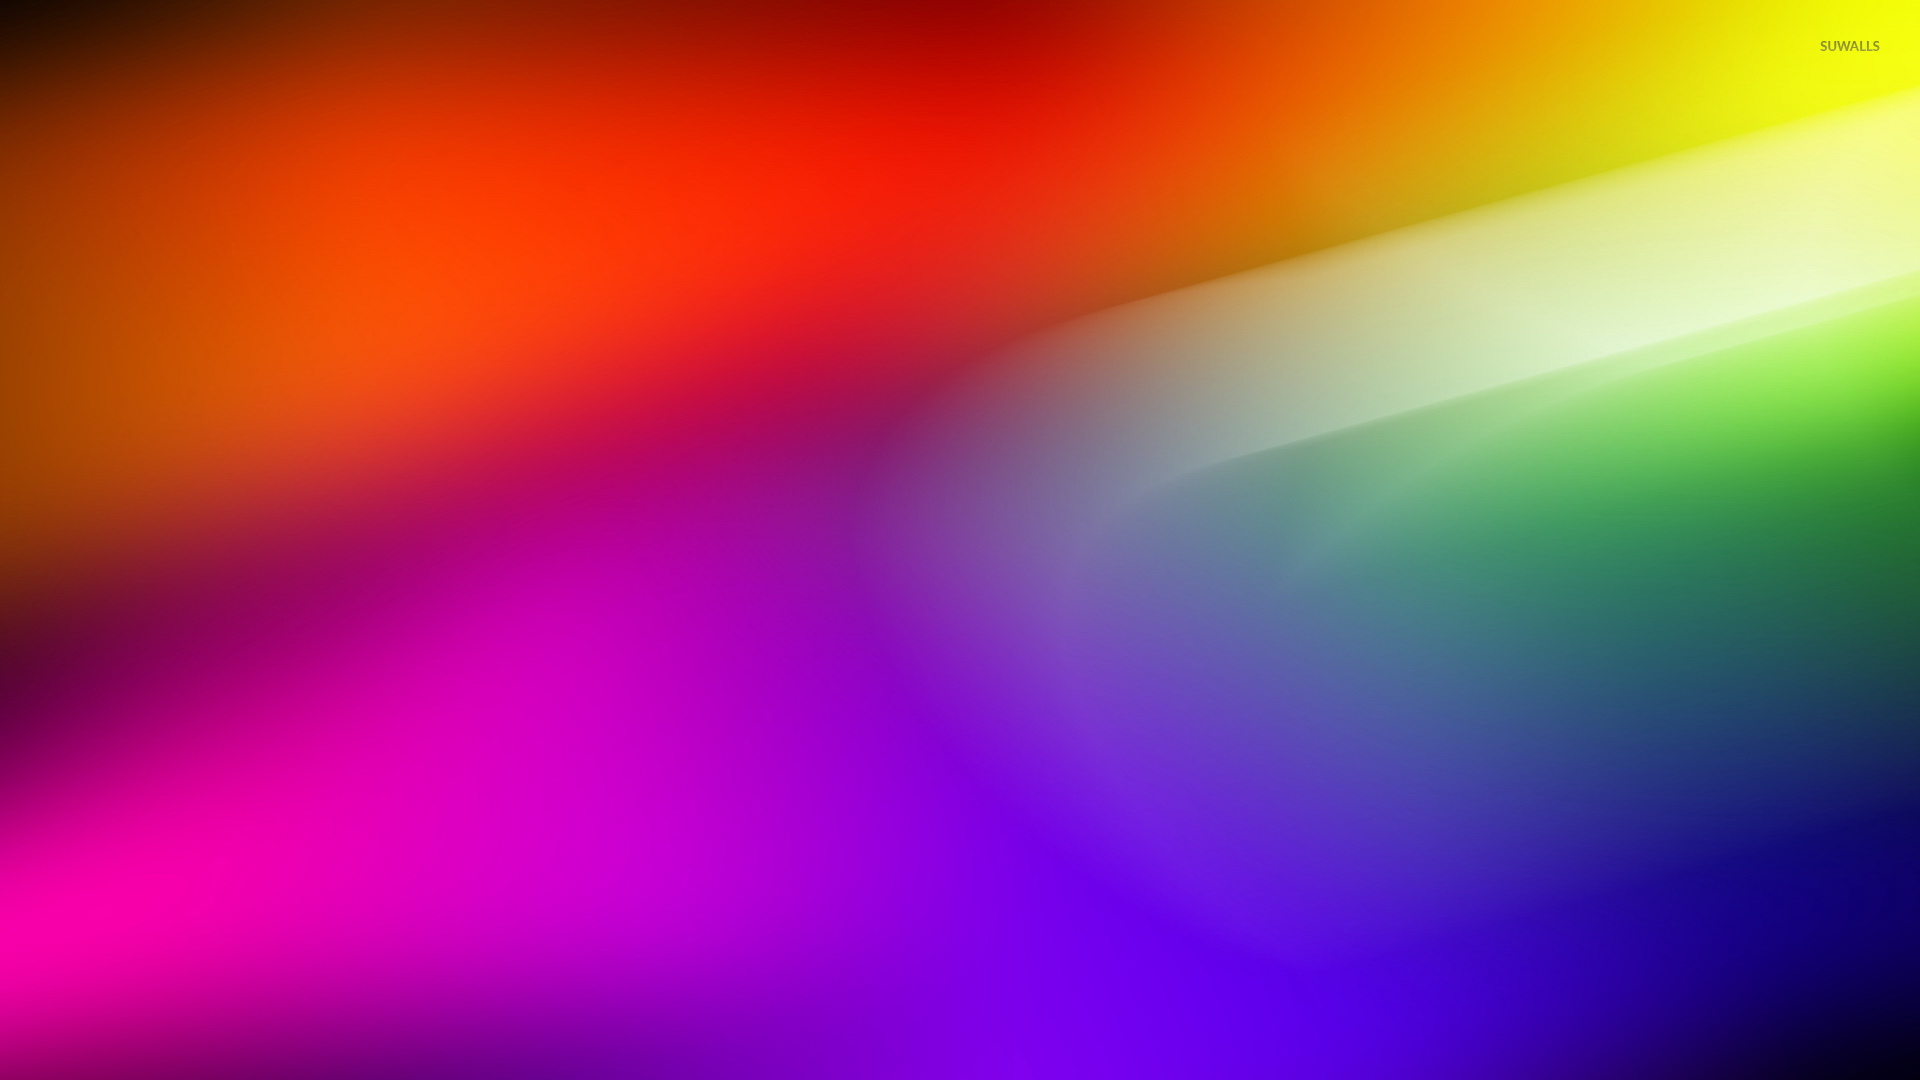 Vivid blur wallpaper Abstract wallpapers